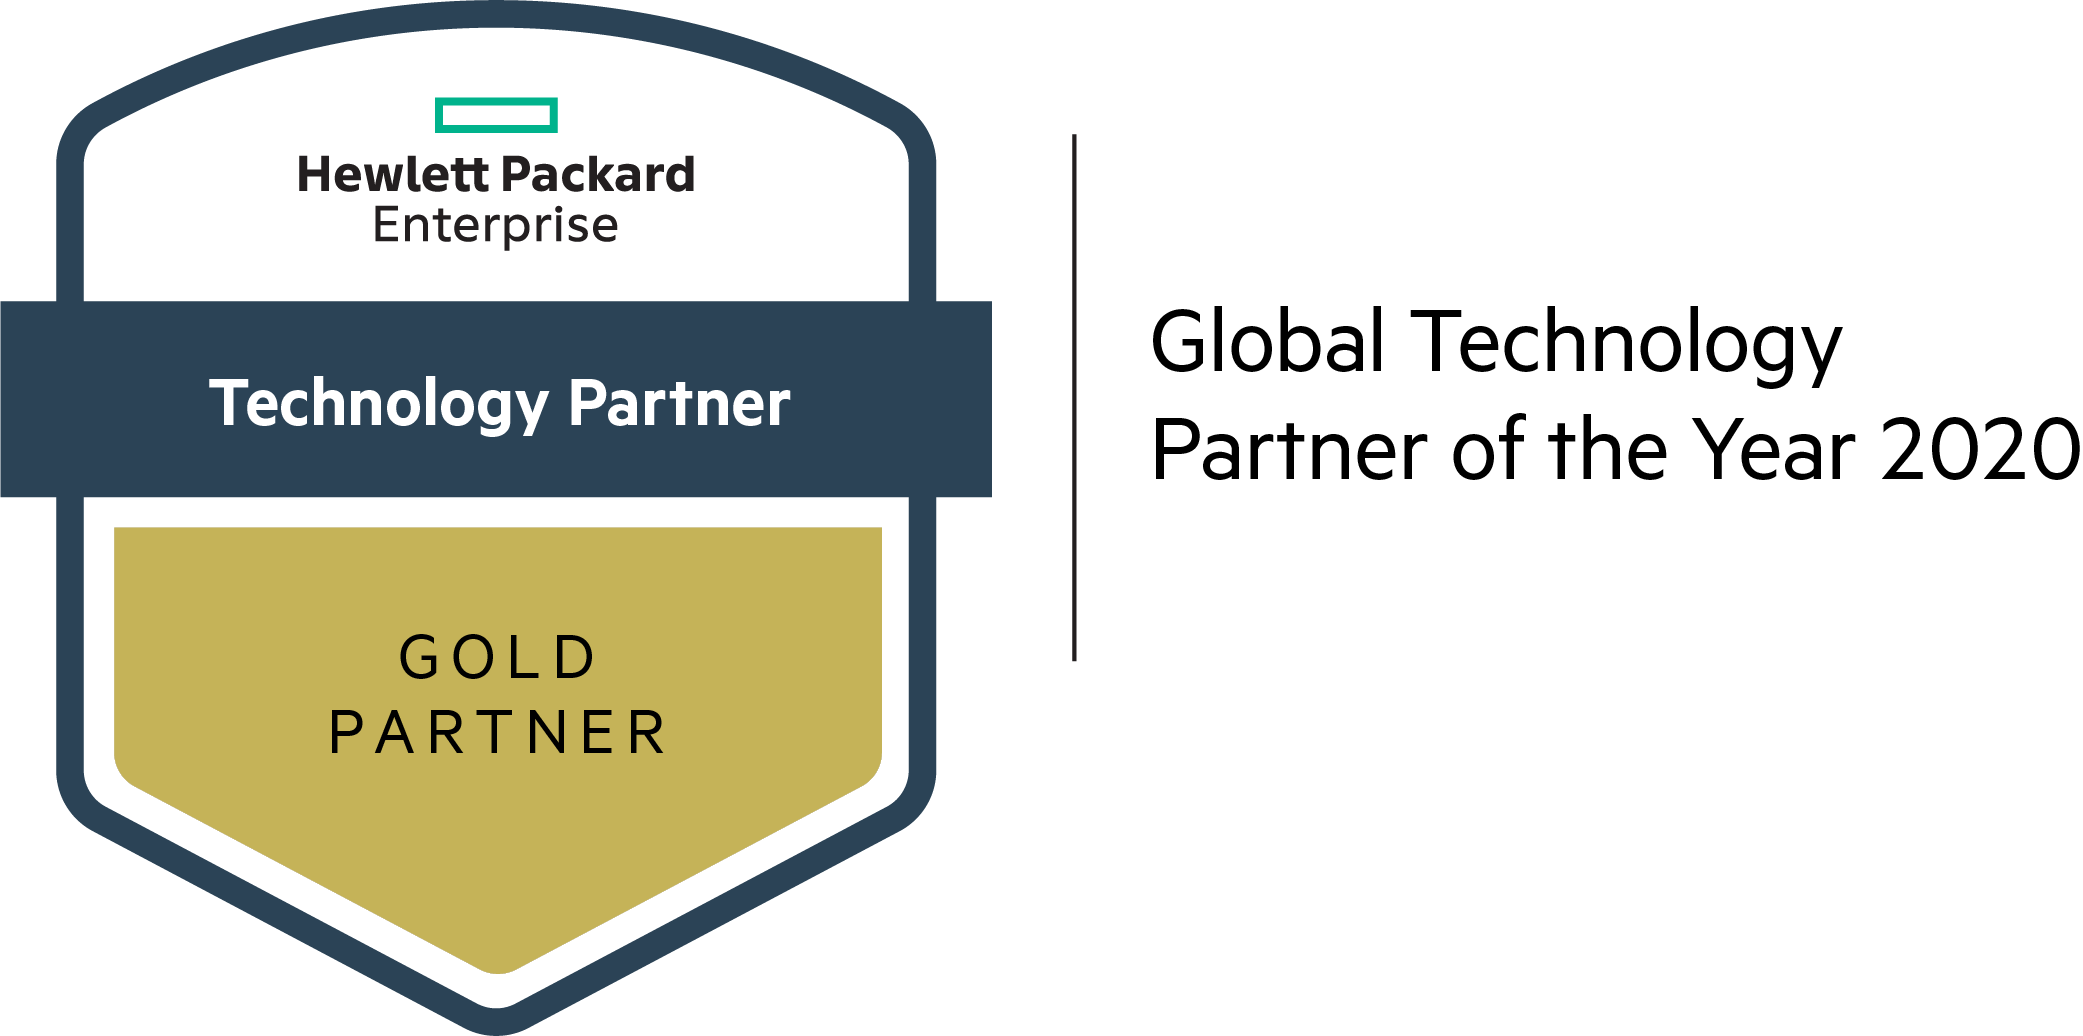 Veeam Wins HPE 2020 Global Technology Partner of the Year Award  for the Second Consecutive Year